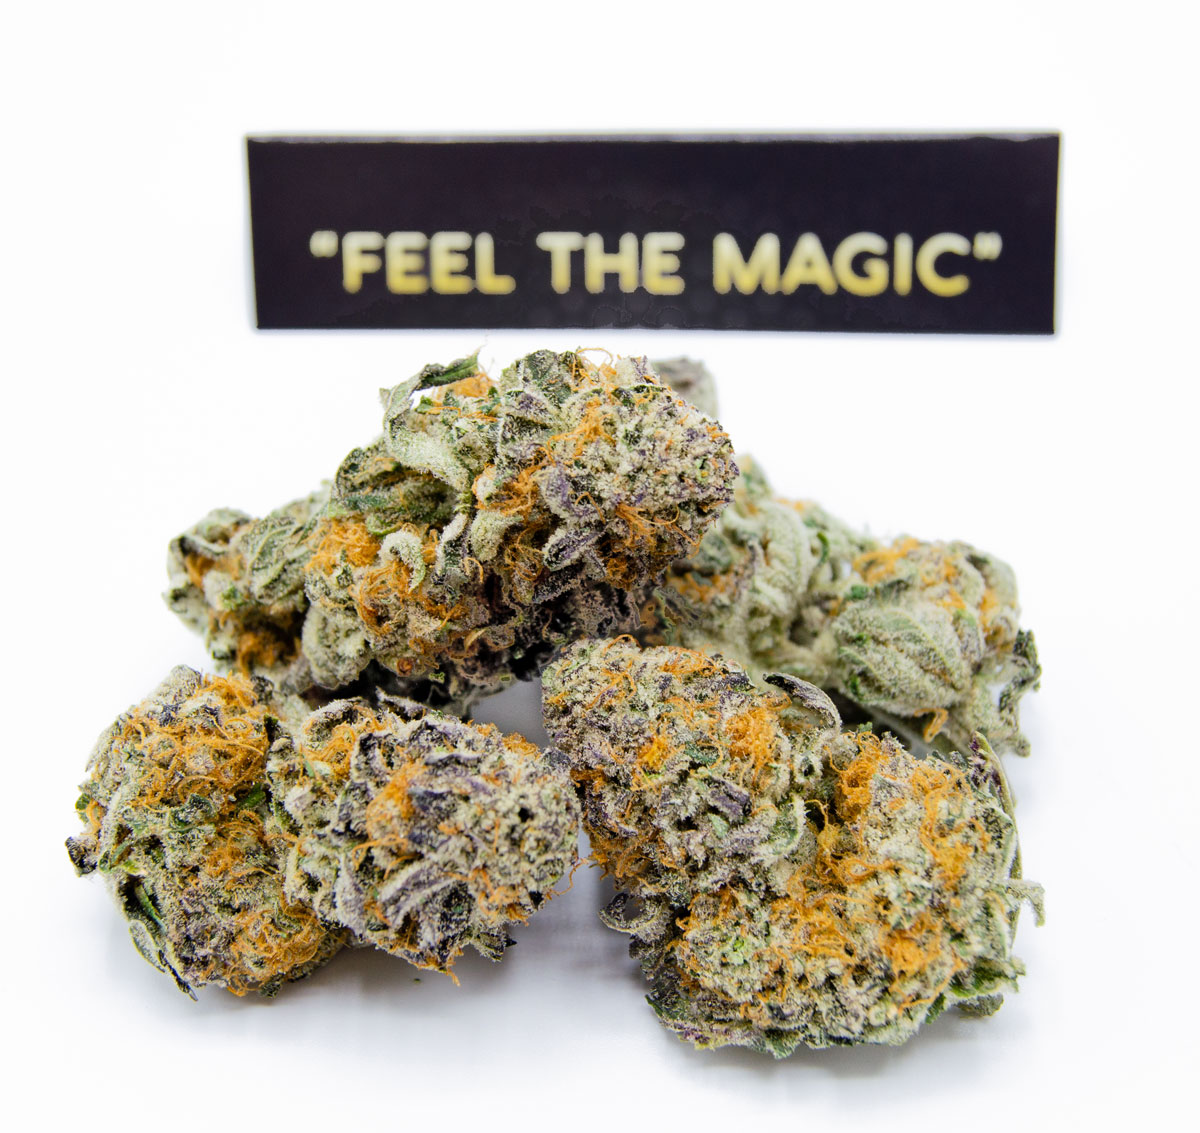 Pure Magic Group produces some top shelf quality hydroponically grown cannabis, that is sure to please. Pure Magic Group grows a diverse line of great marijuana strains for each type of consumer. If you're looking for a tasty Indica, a powerful Sativa, or a smooth Hybrid, Pure Magic has something right for you. Stop by Destination HWY 420 in East Bremerton to see Pure Magic marijuana products in person.